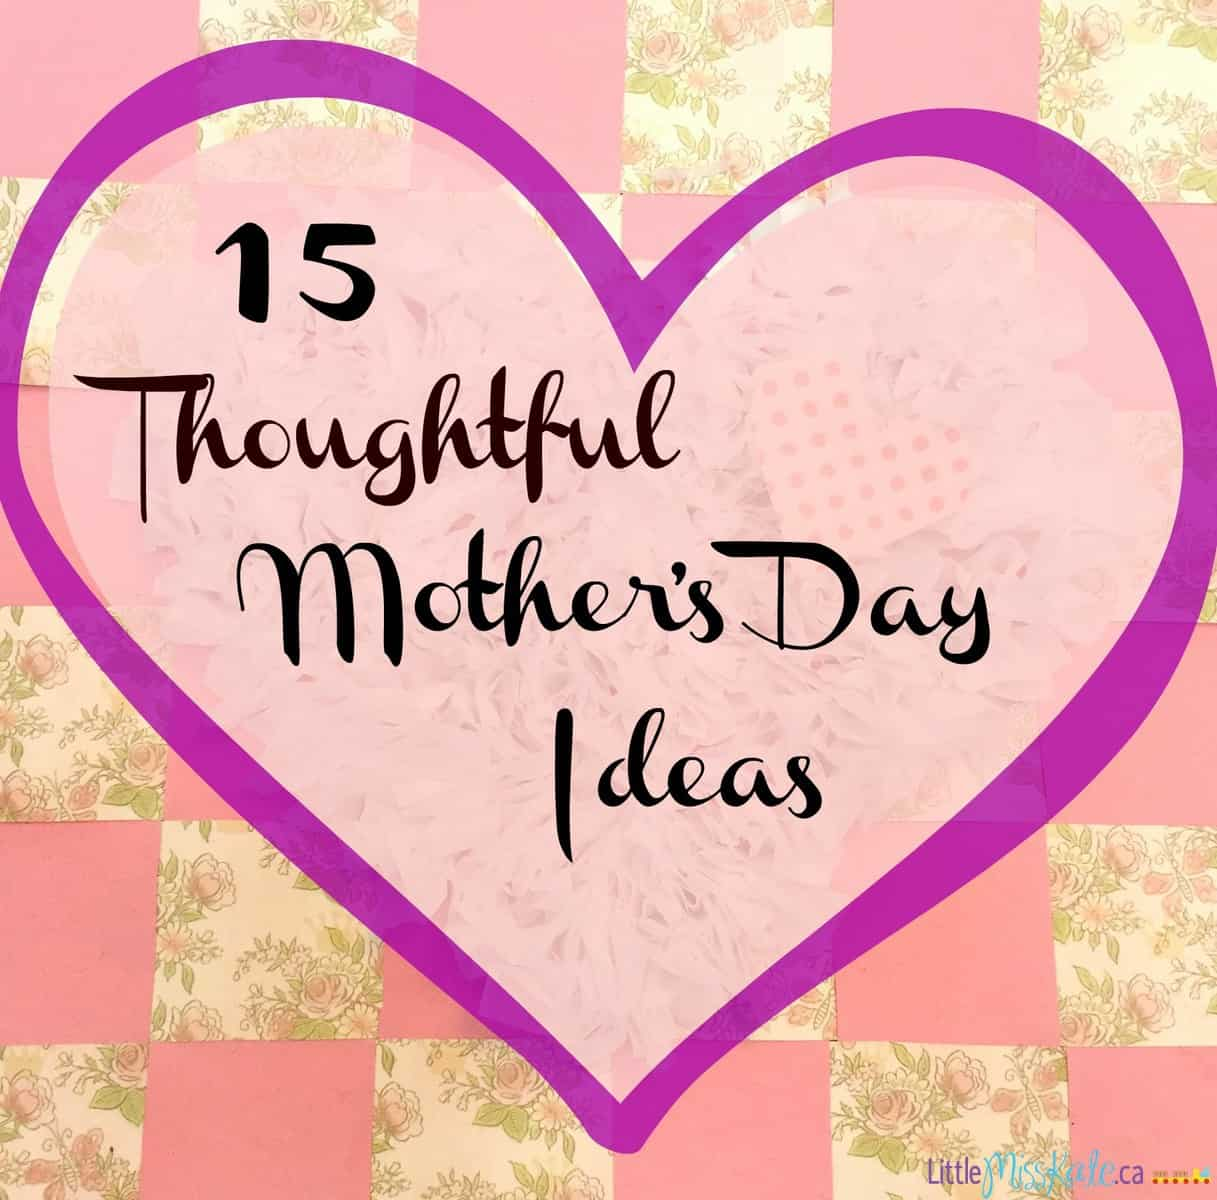 15 Thoughtful Mother's Day Ideas